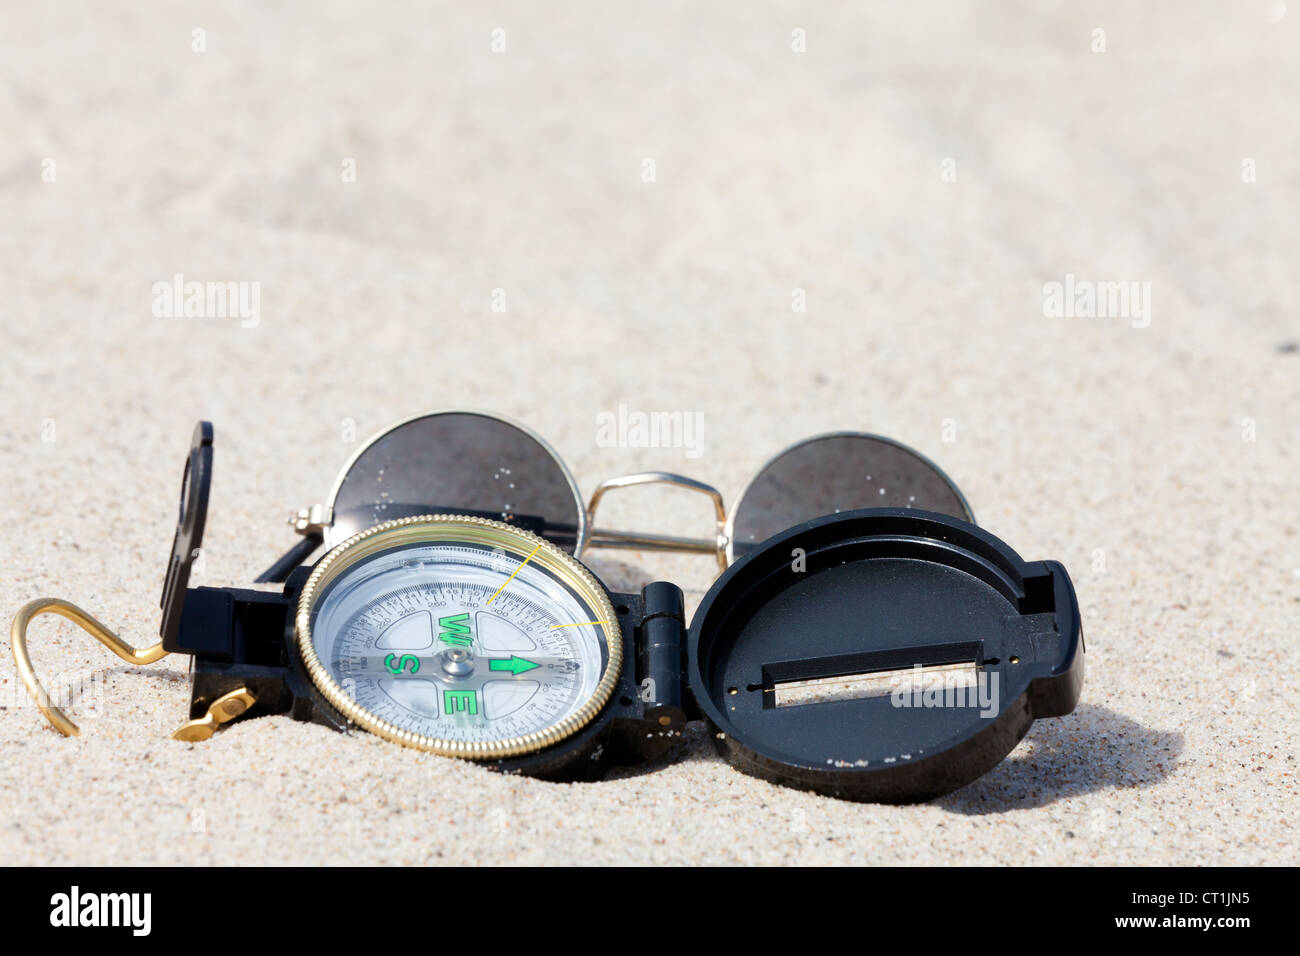 A compass and sunglasses lying on the hot desert sand - Stock Image